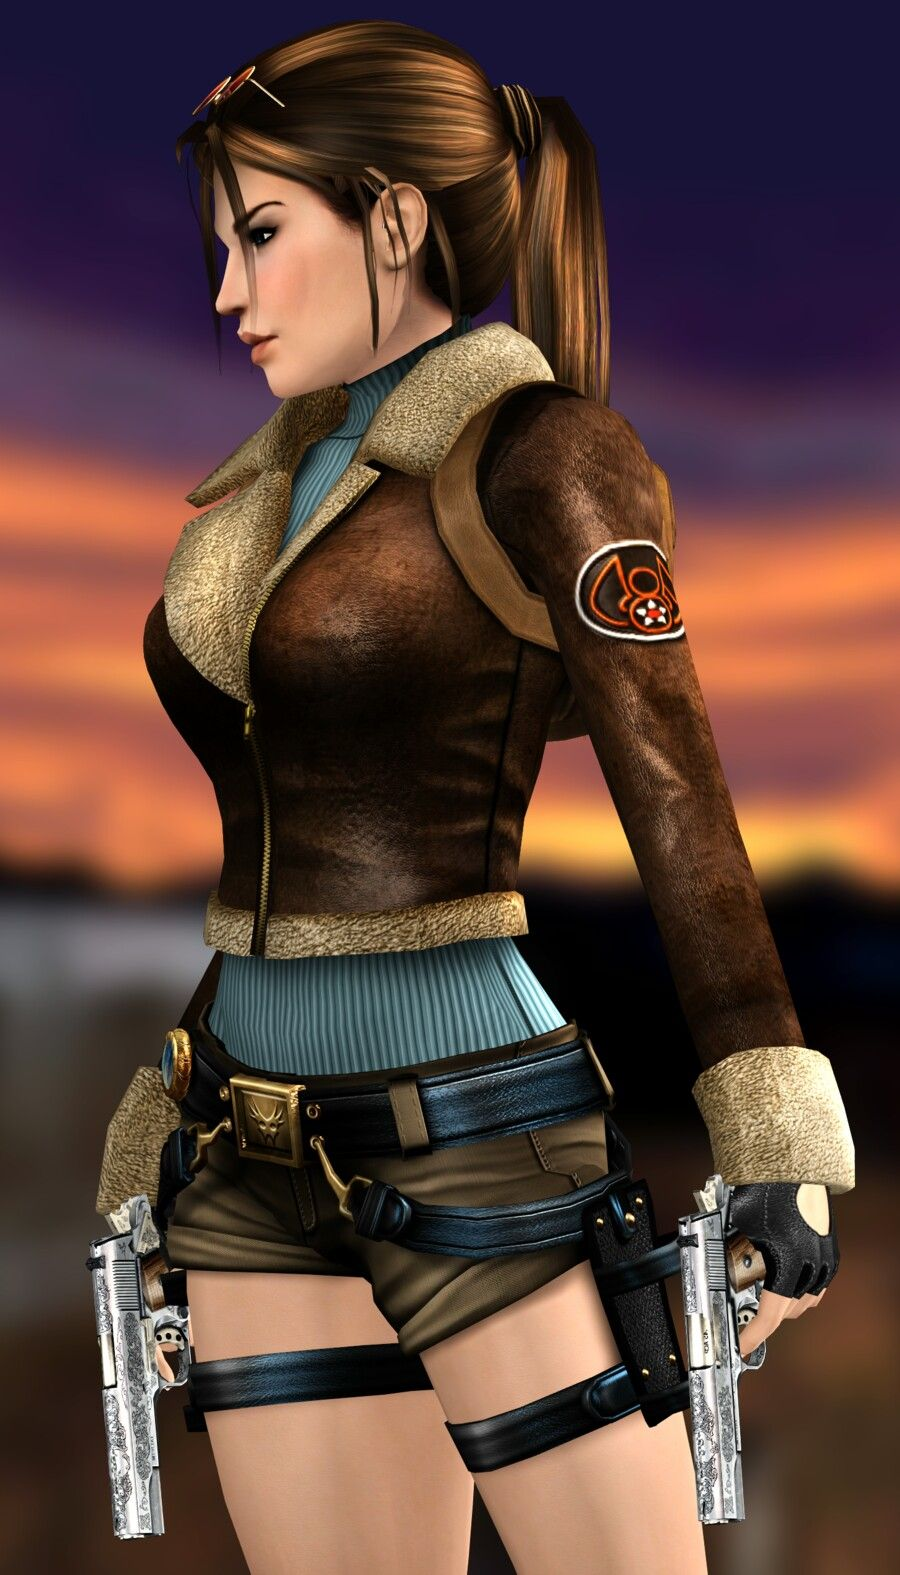 Tomb Raider I Have A Jacket Like This And Love It Forever Tomb